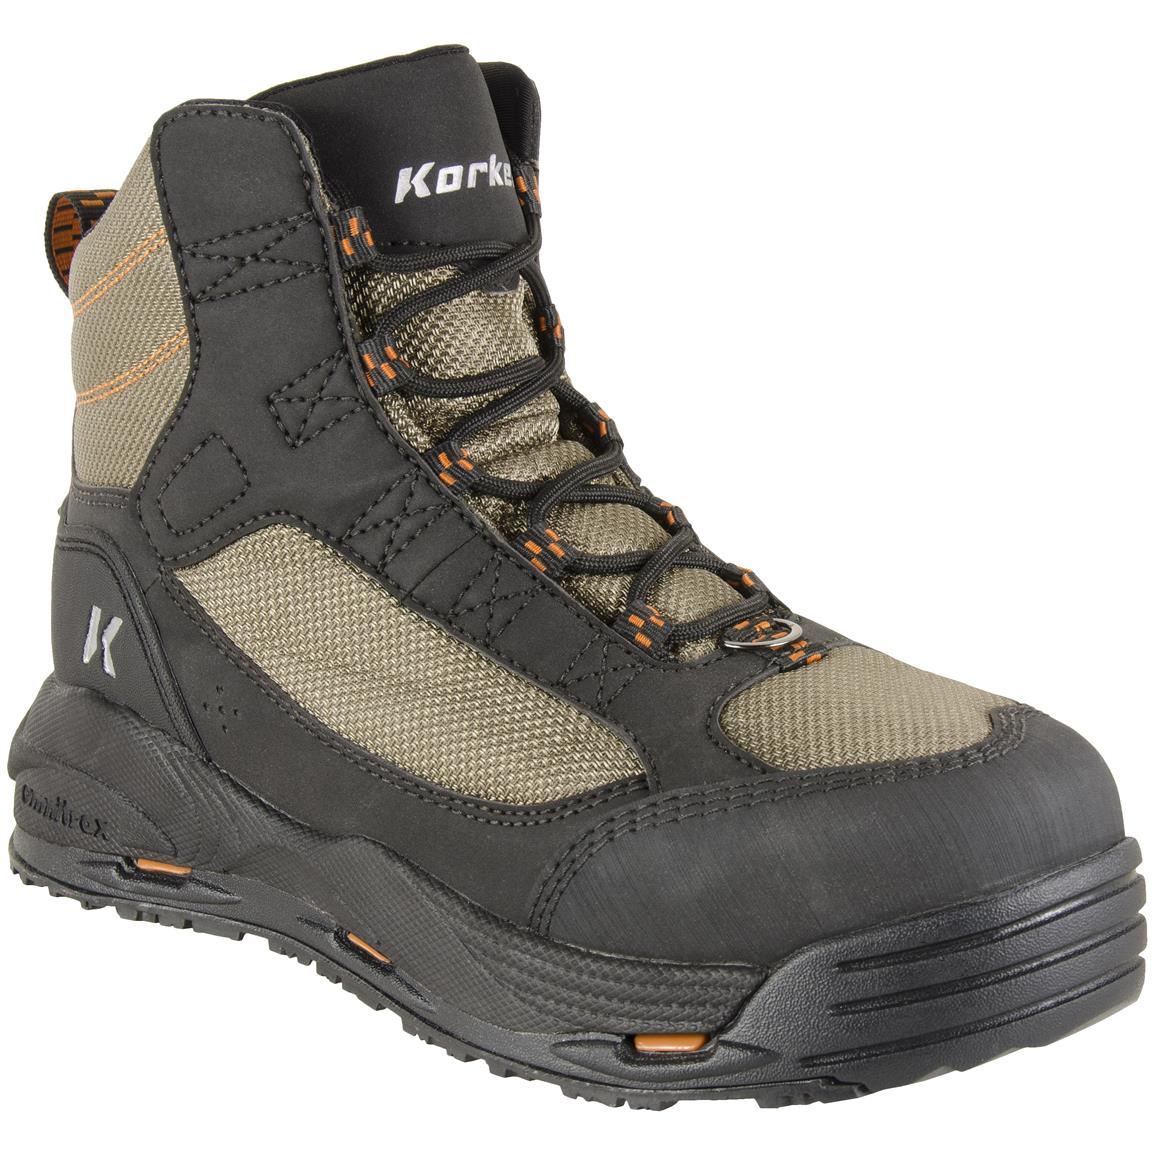 Korkers Men's Greenback Wading Boots, Felt Outsole Only, Beige / Black